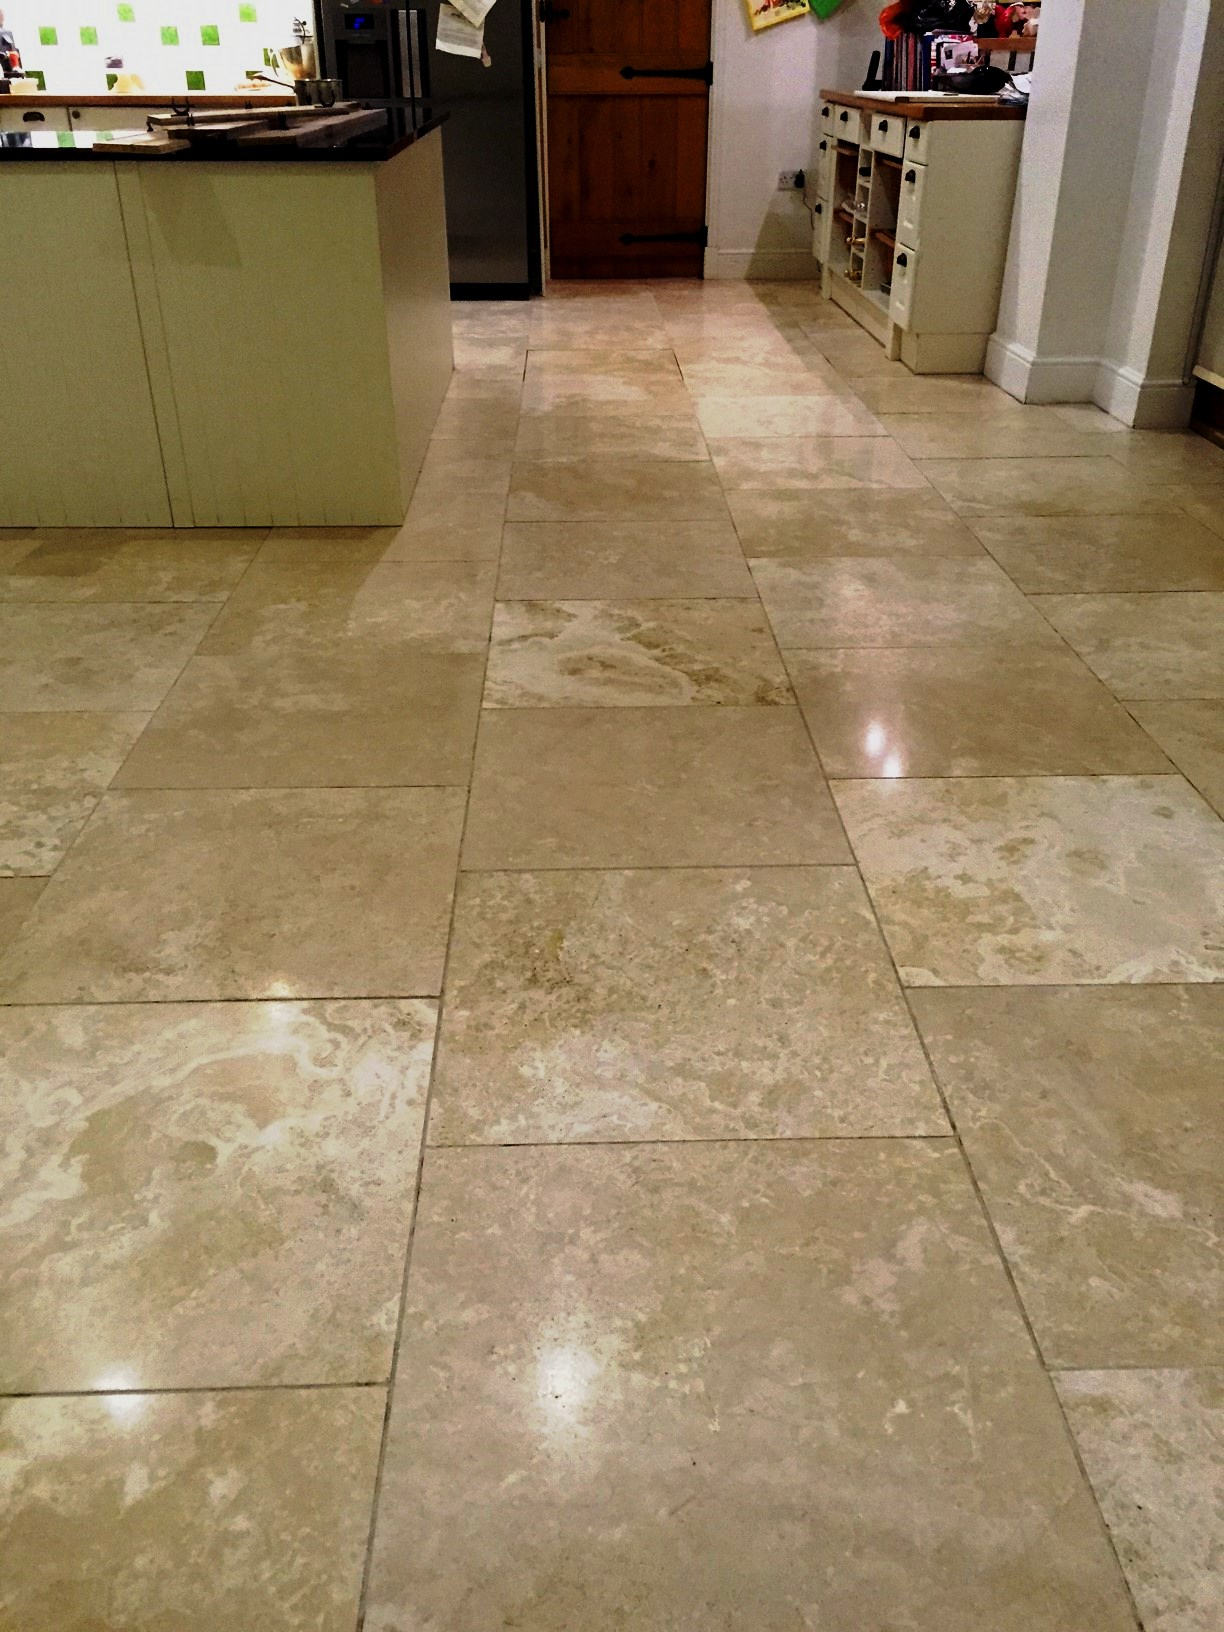 travertine posts stone cleaning and polishing tips for travertine floors information tips. Black Bedroom Furniture Sets. Home Design Ideas